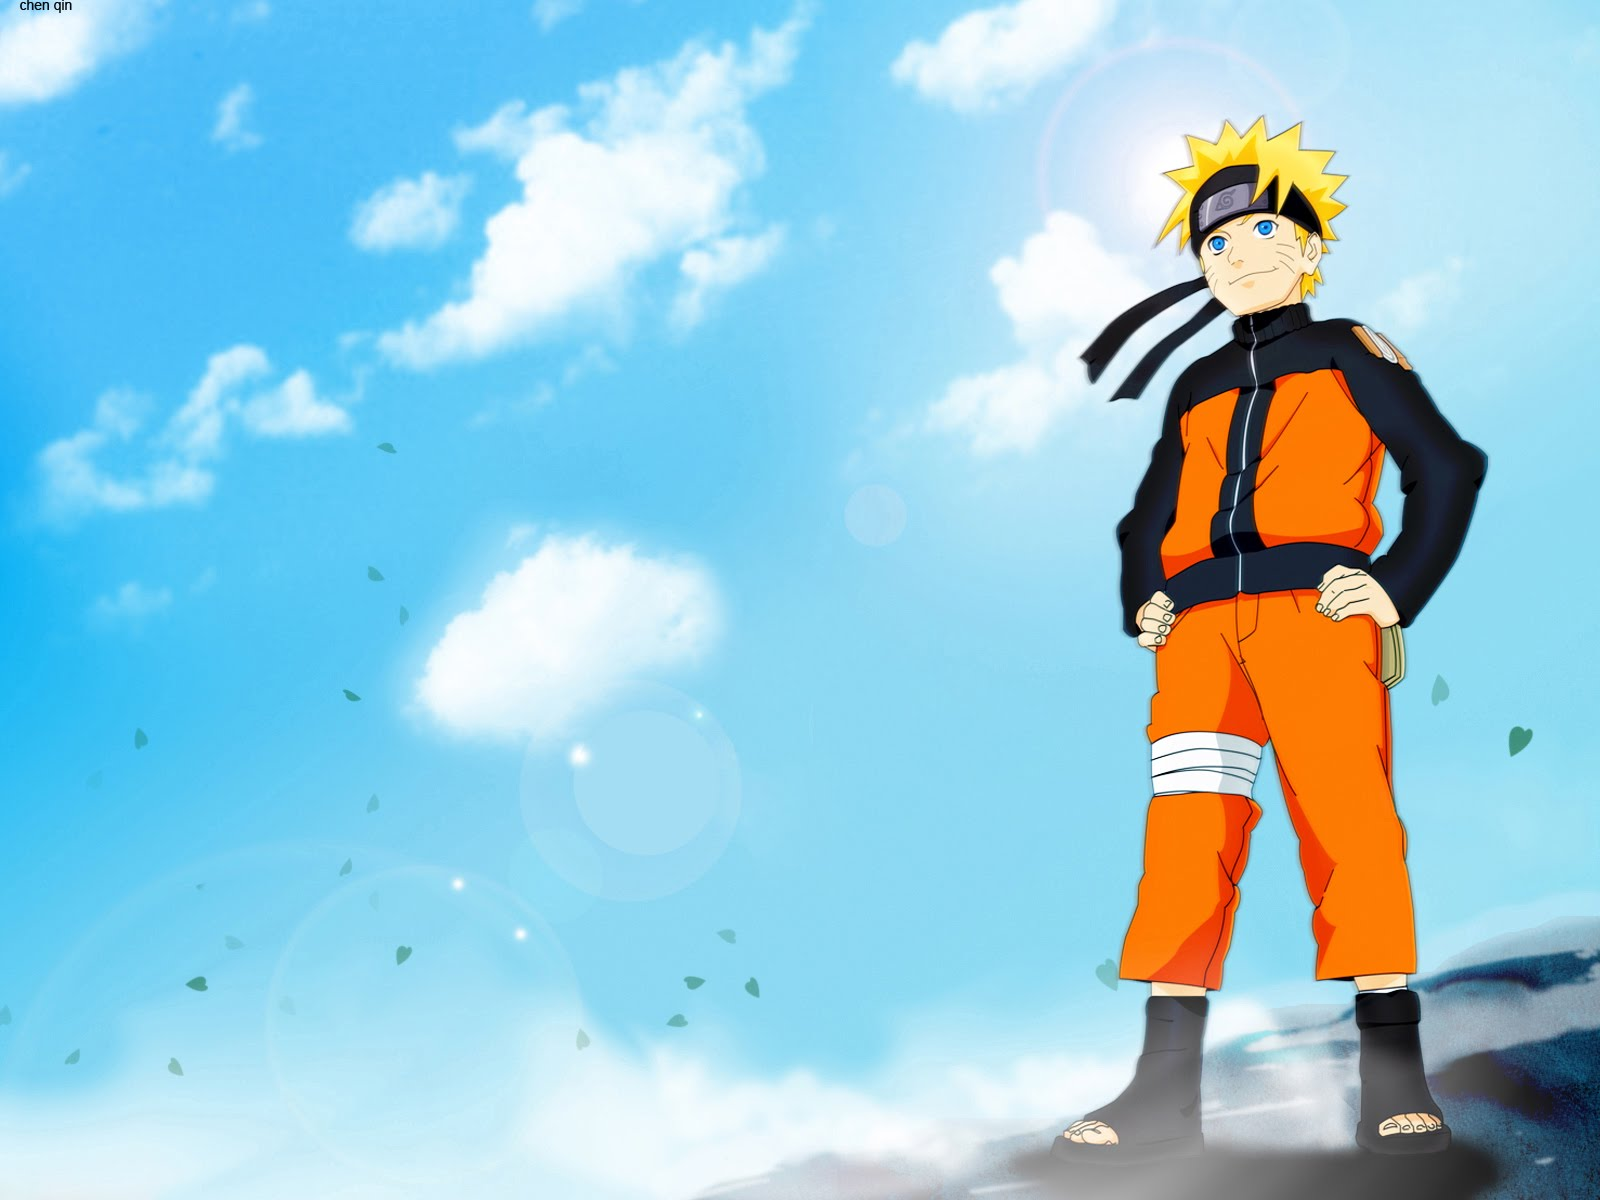 and cool naruto high definition wallpapers for your desktopEnjoy 1600x1200